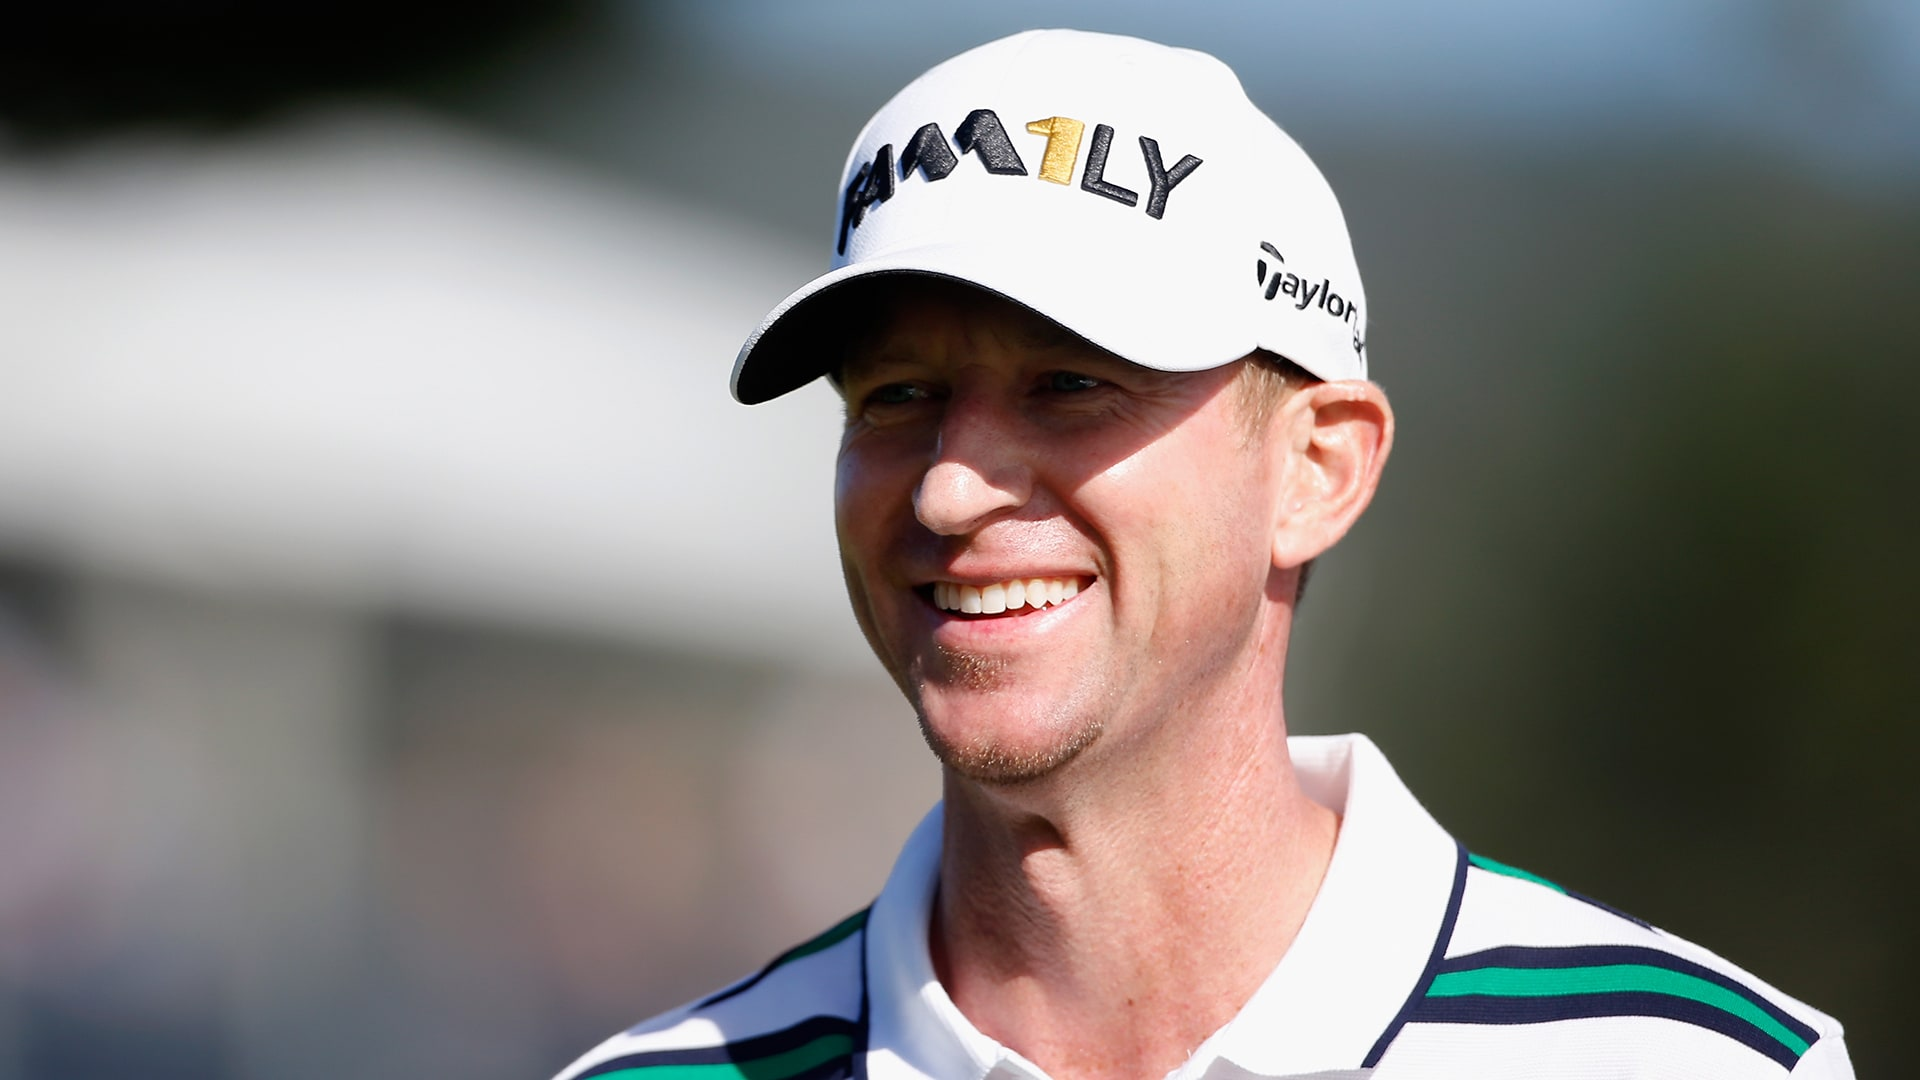 Official Masters Coverage Taylor Pebble D Smile